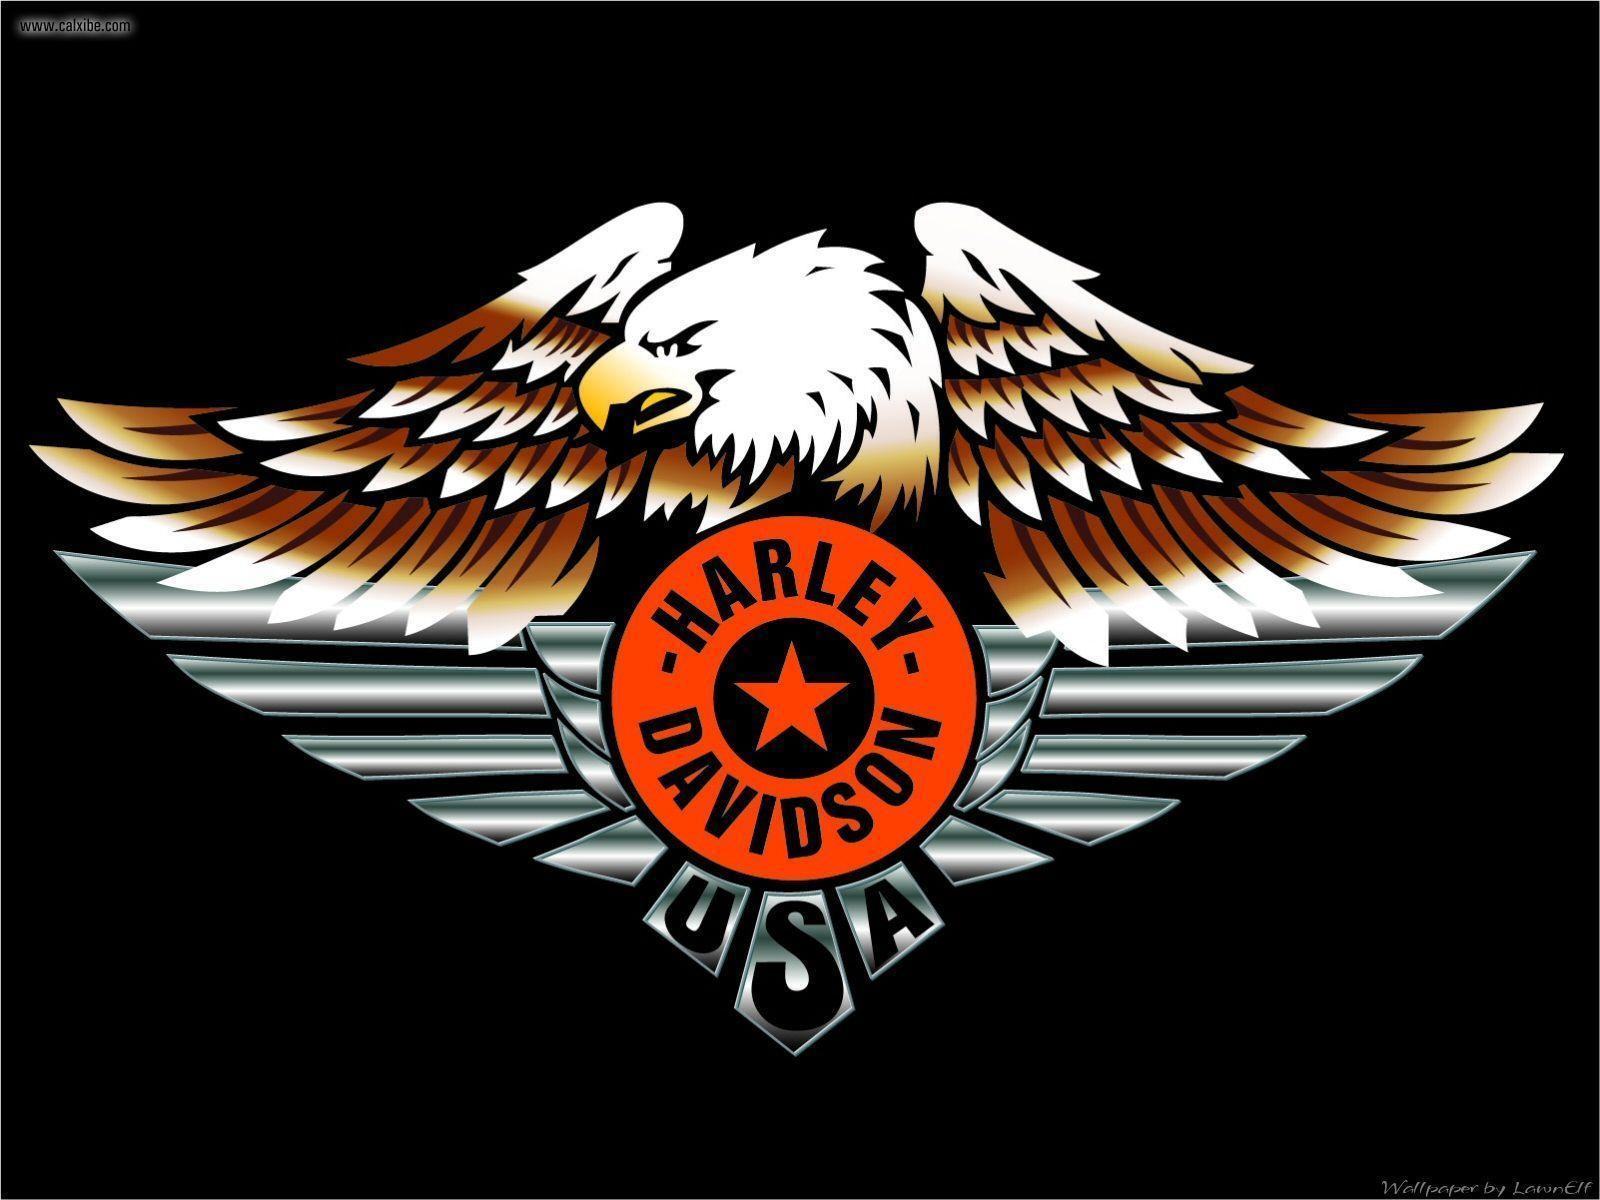 newest harley davidson logo wallpapers - photo #32